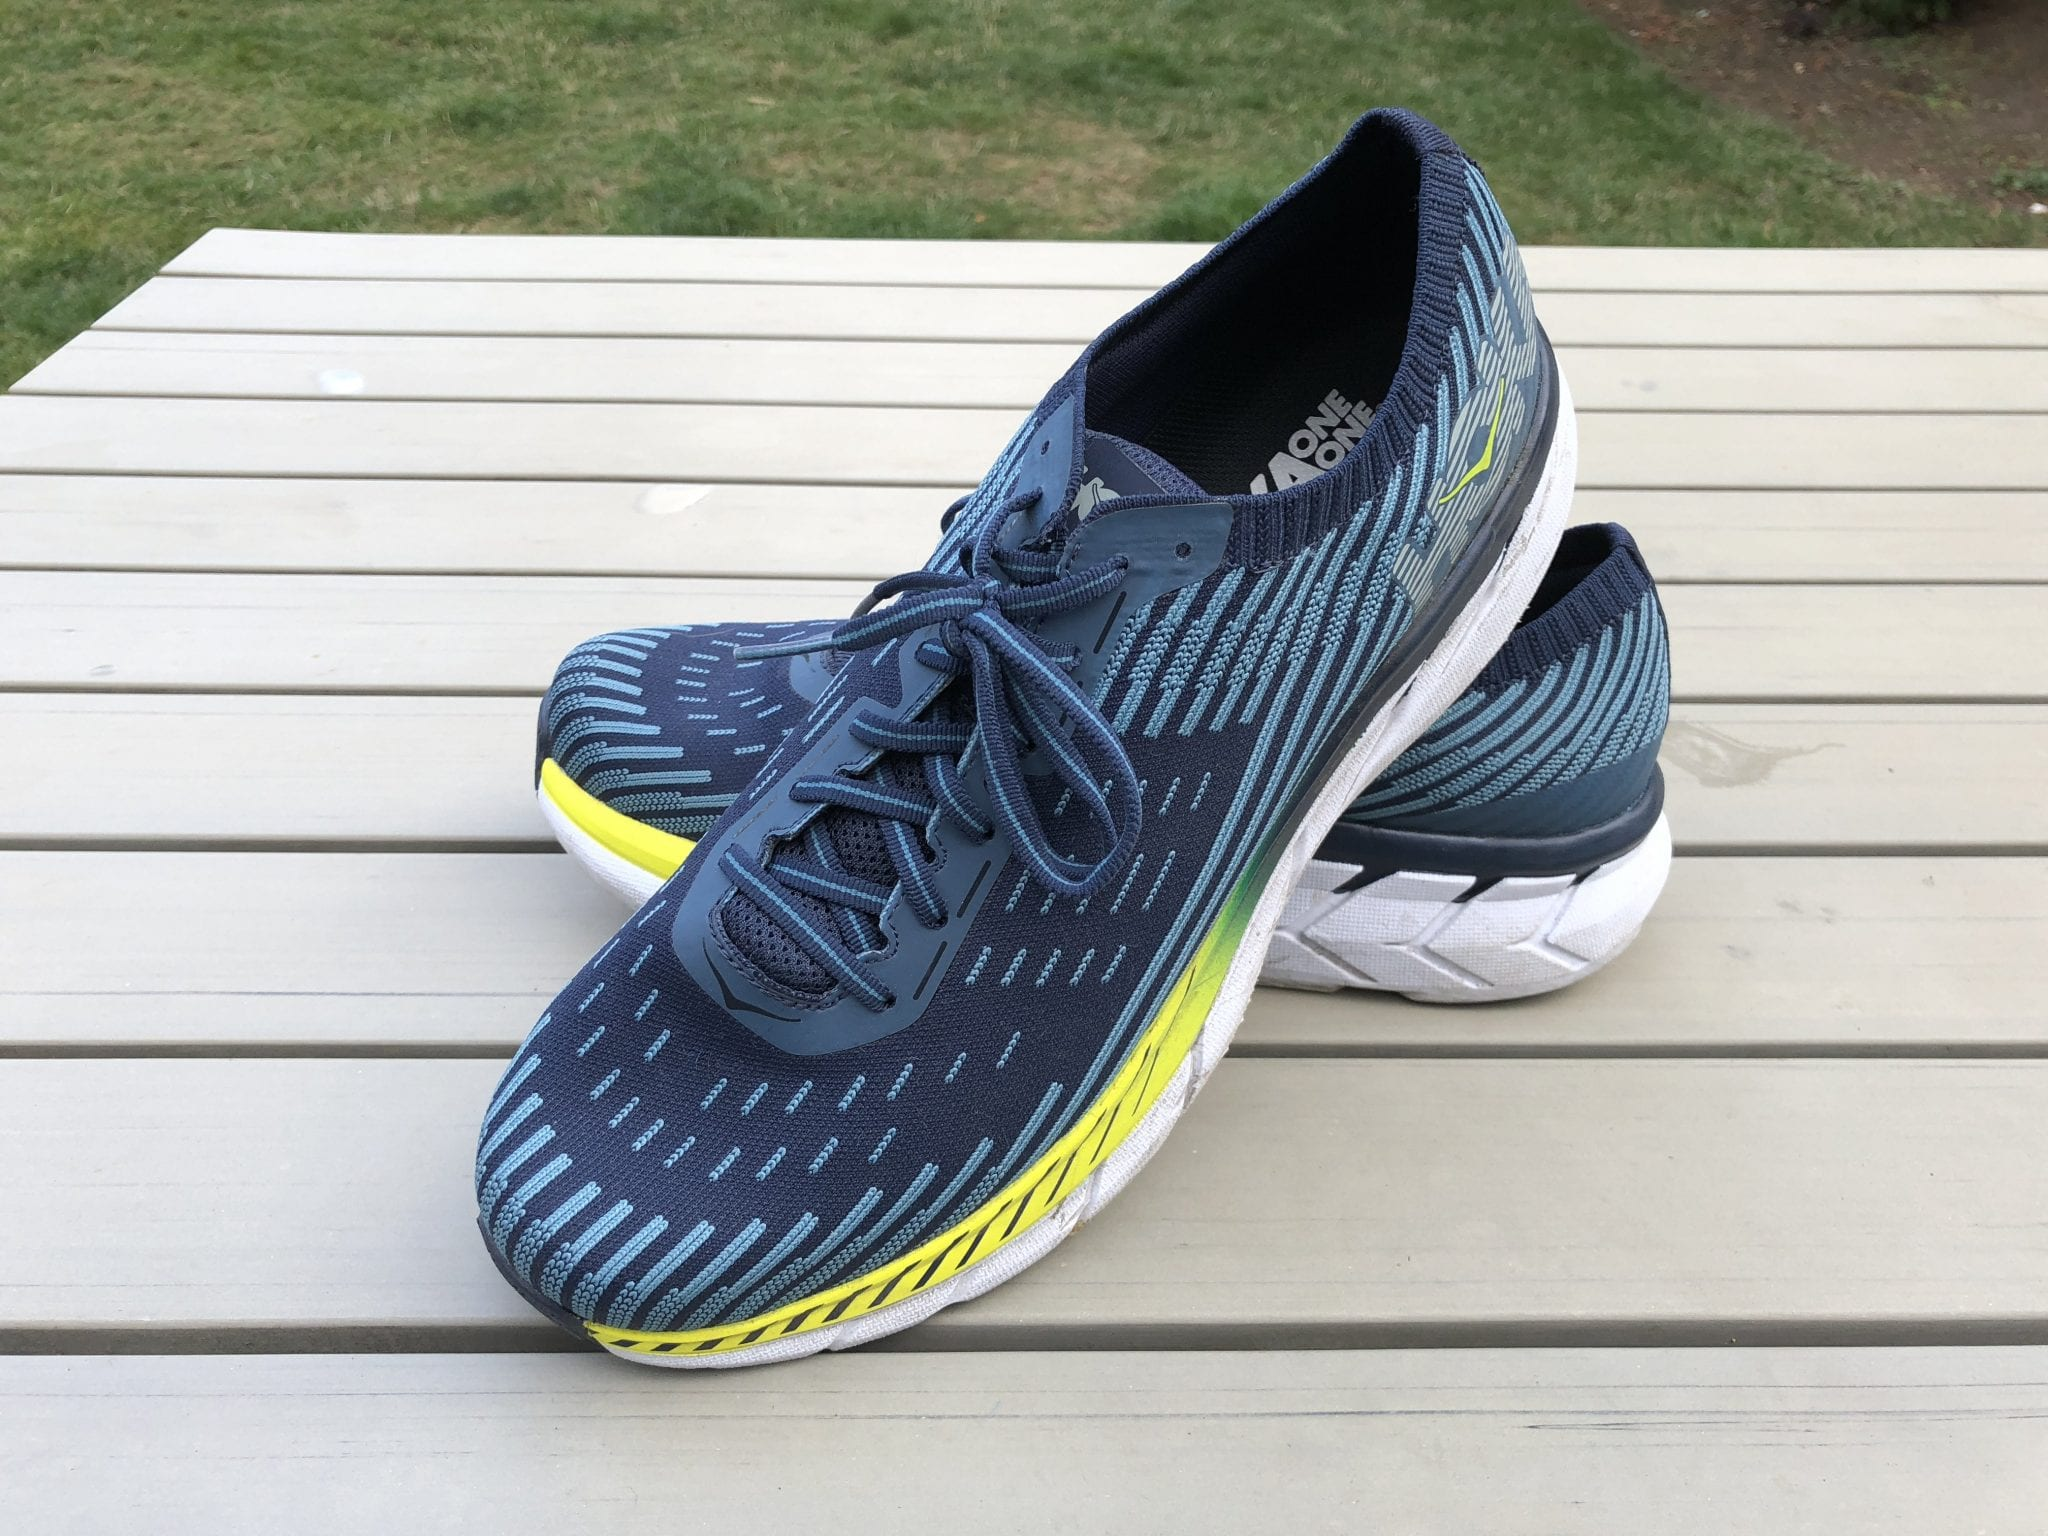 HokaOneOne Clifton 5 Knit 4